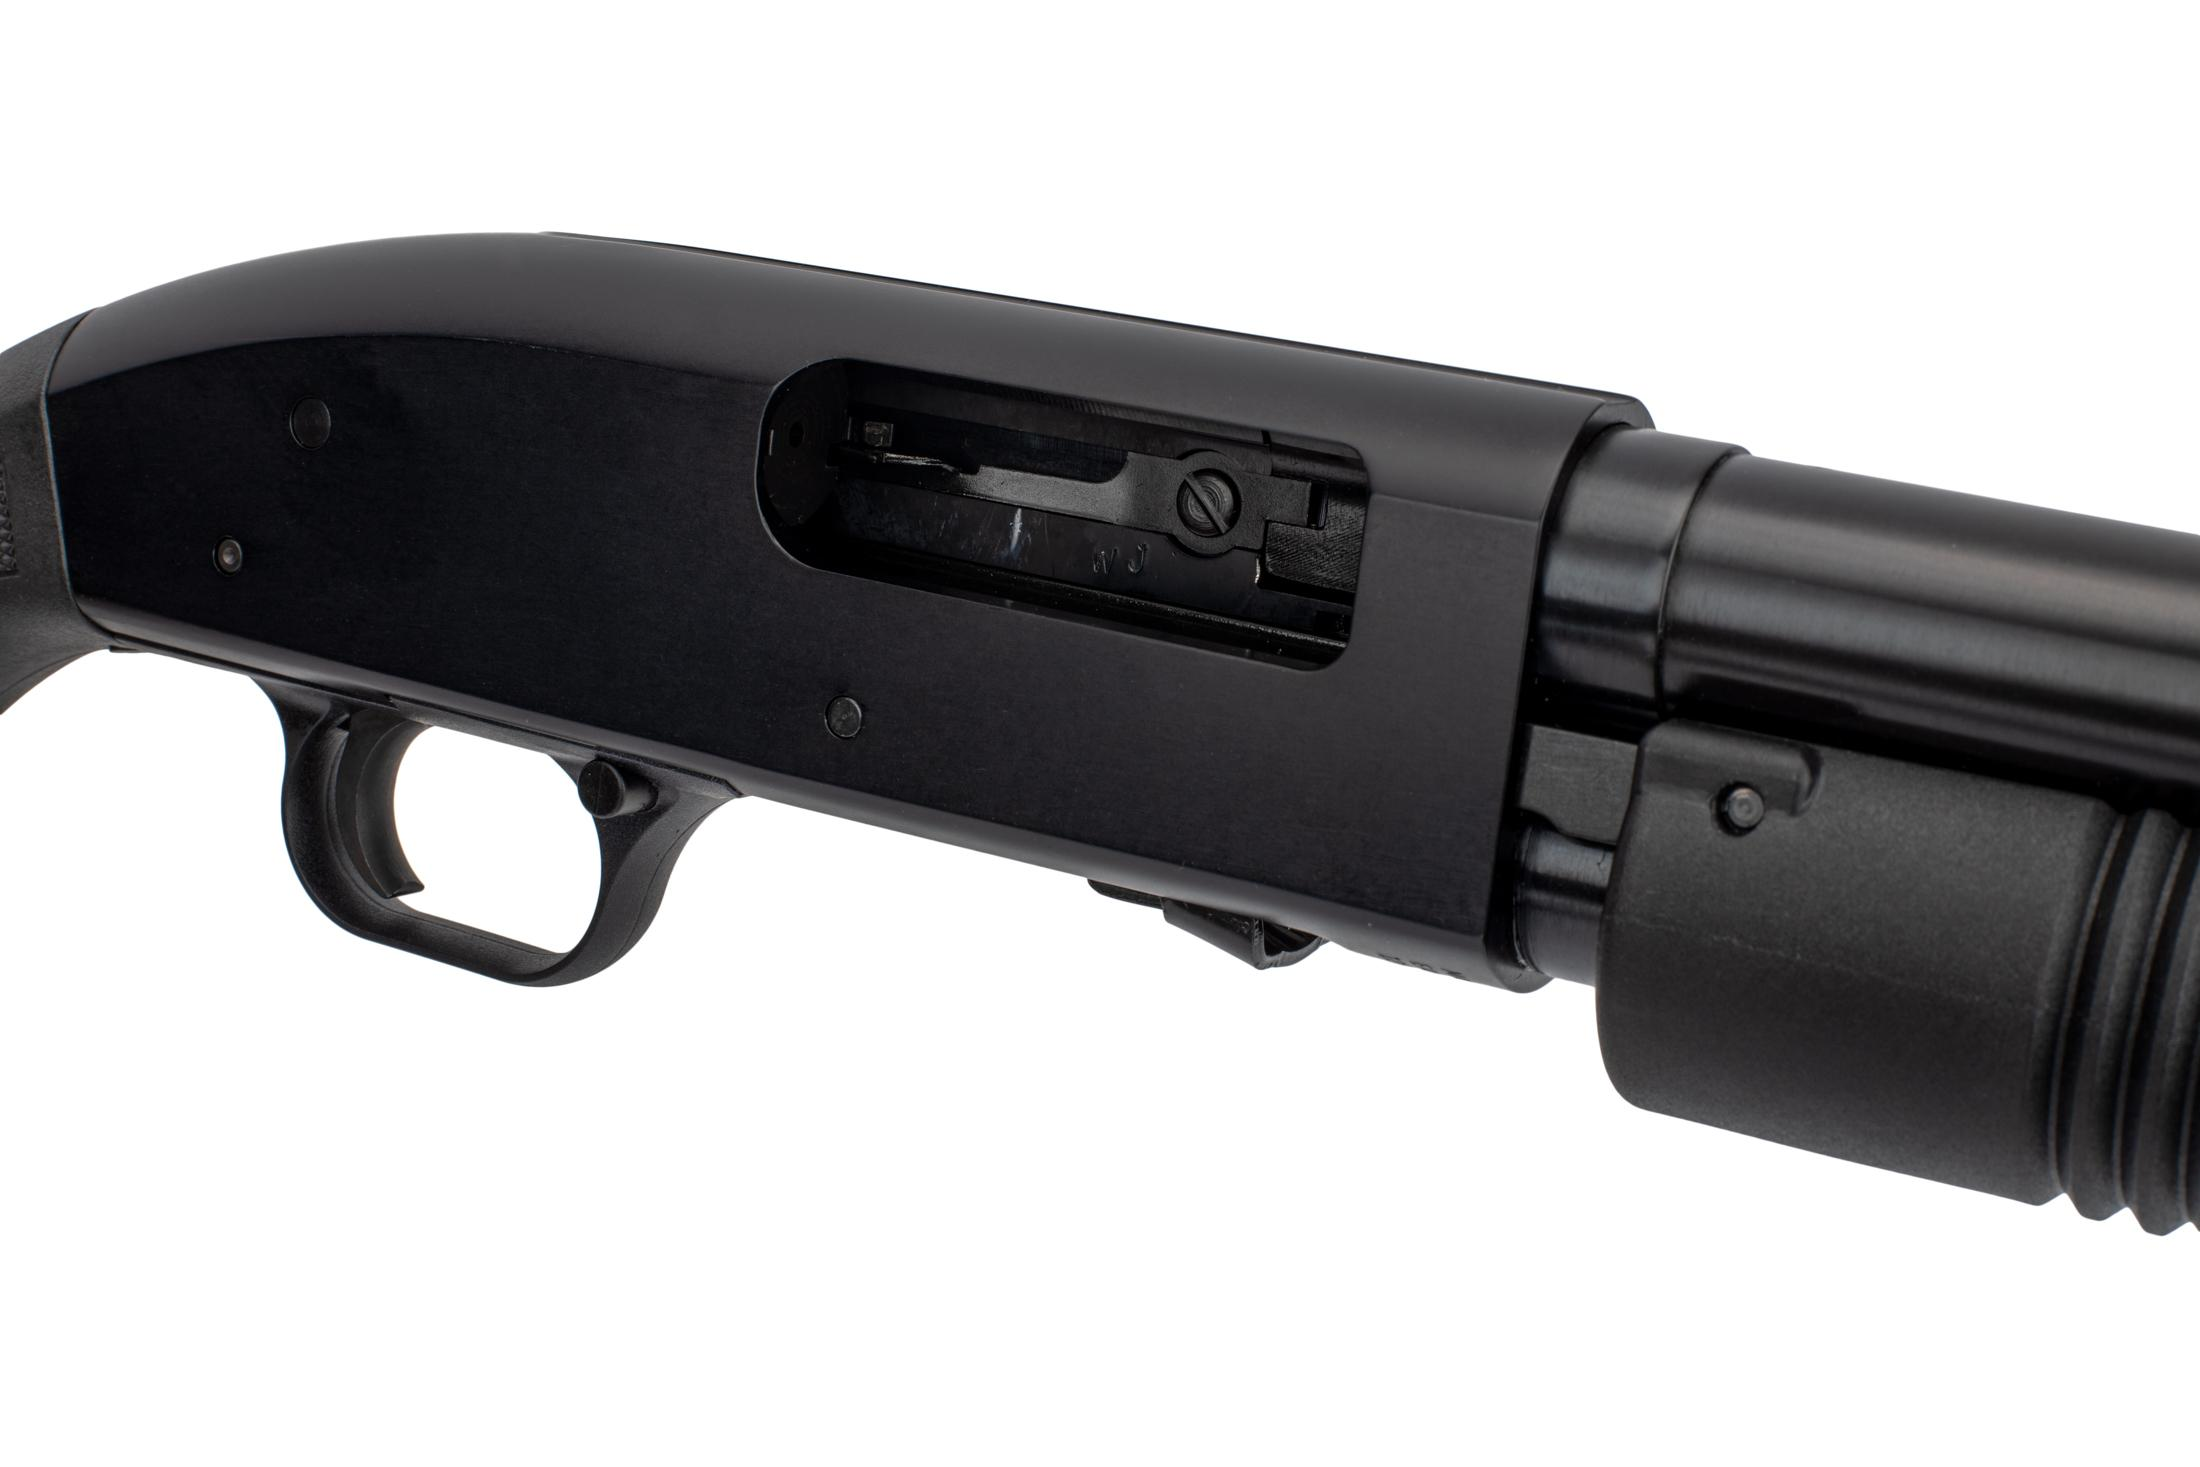 "Mossberg 3 12 gauge Maverick 88 pump action shotgun features an 18.5"" cylinder bore barrel."